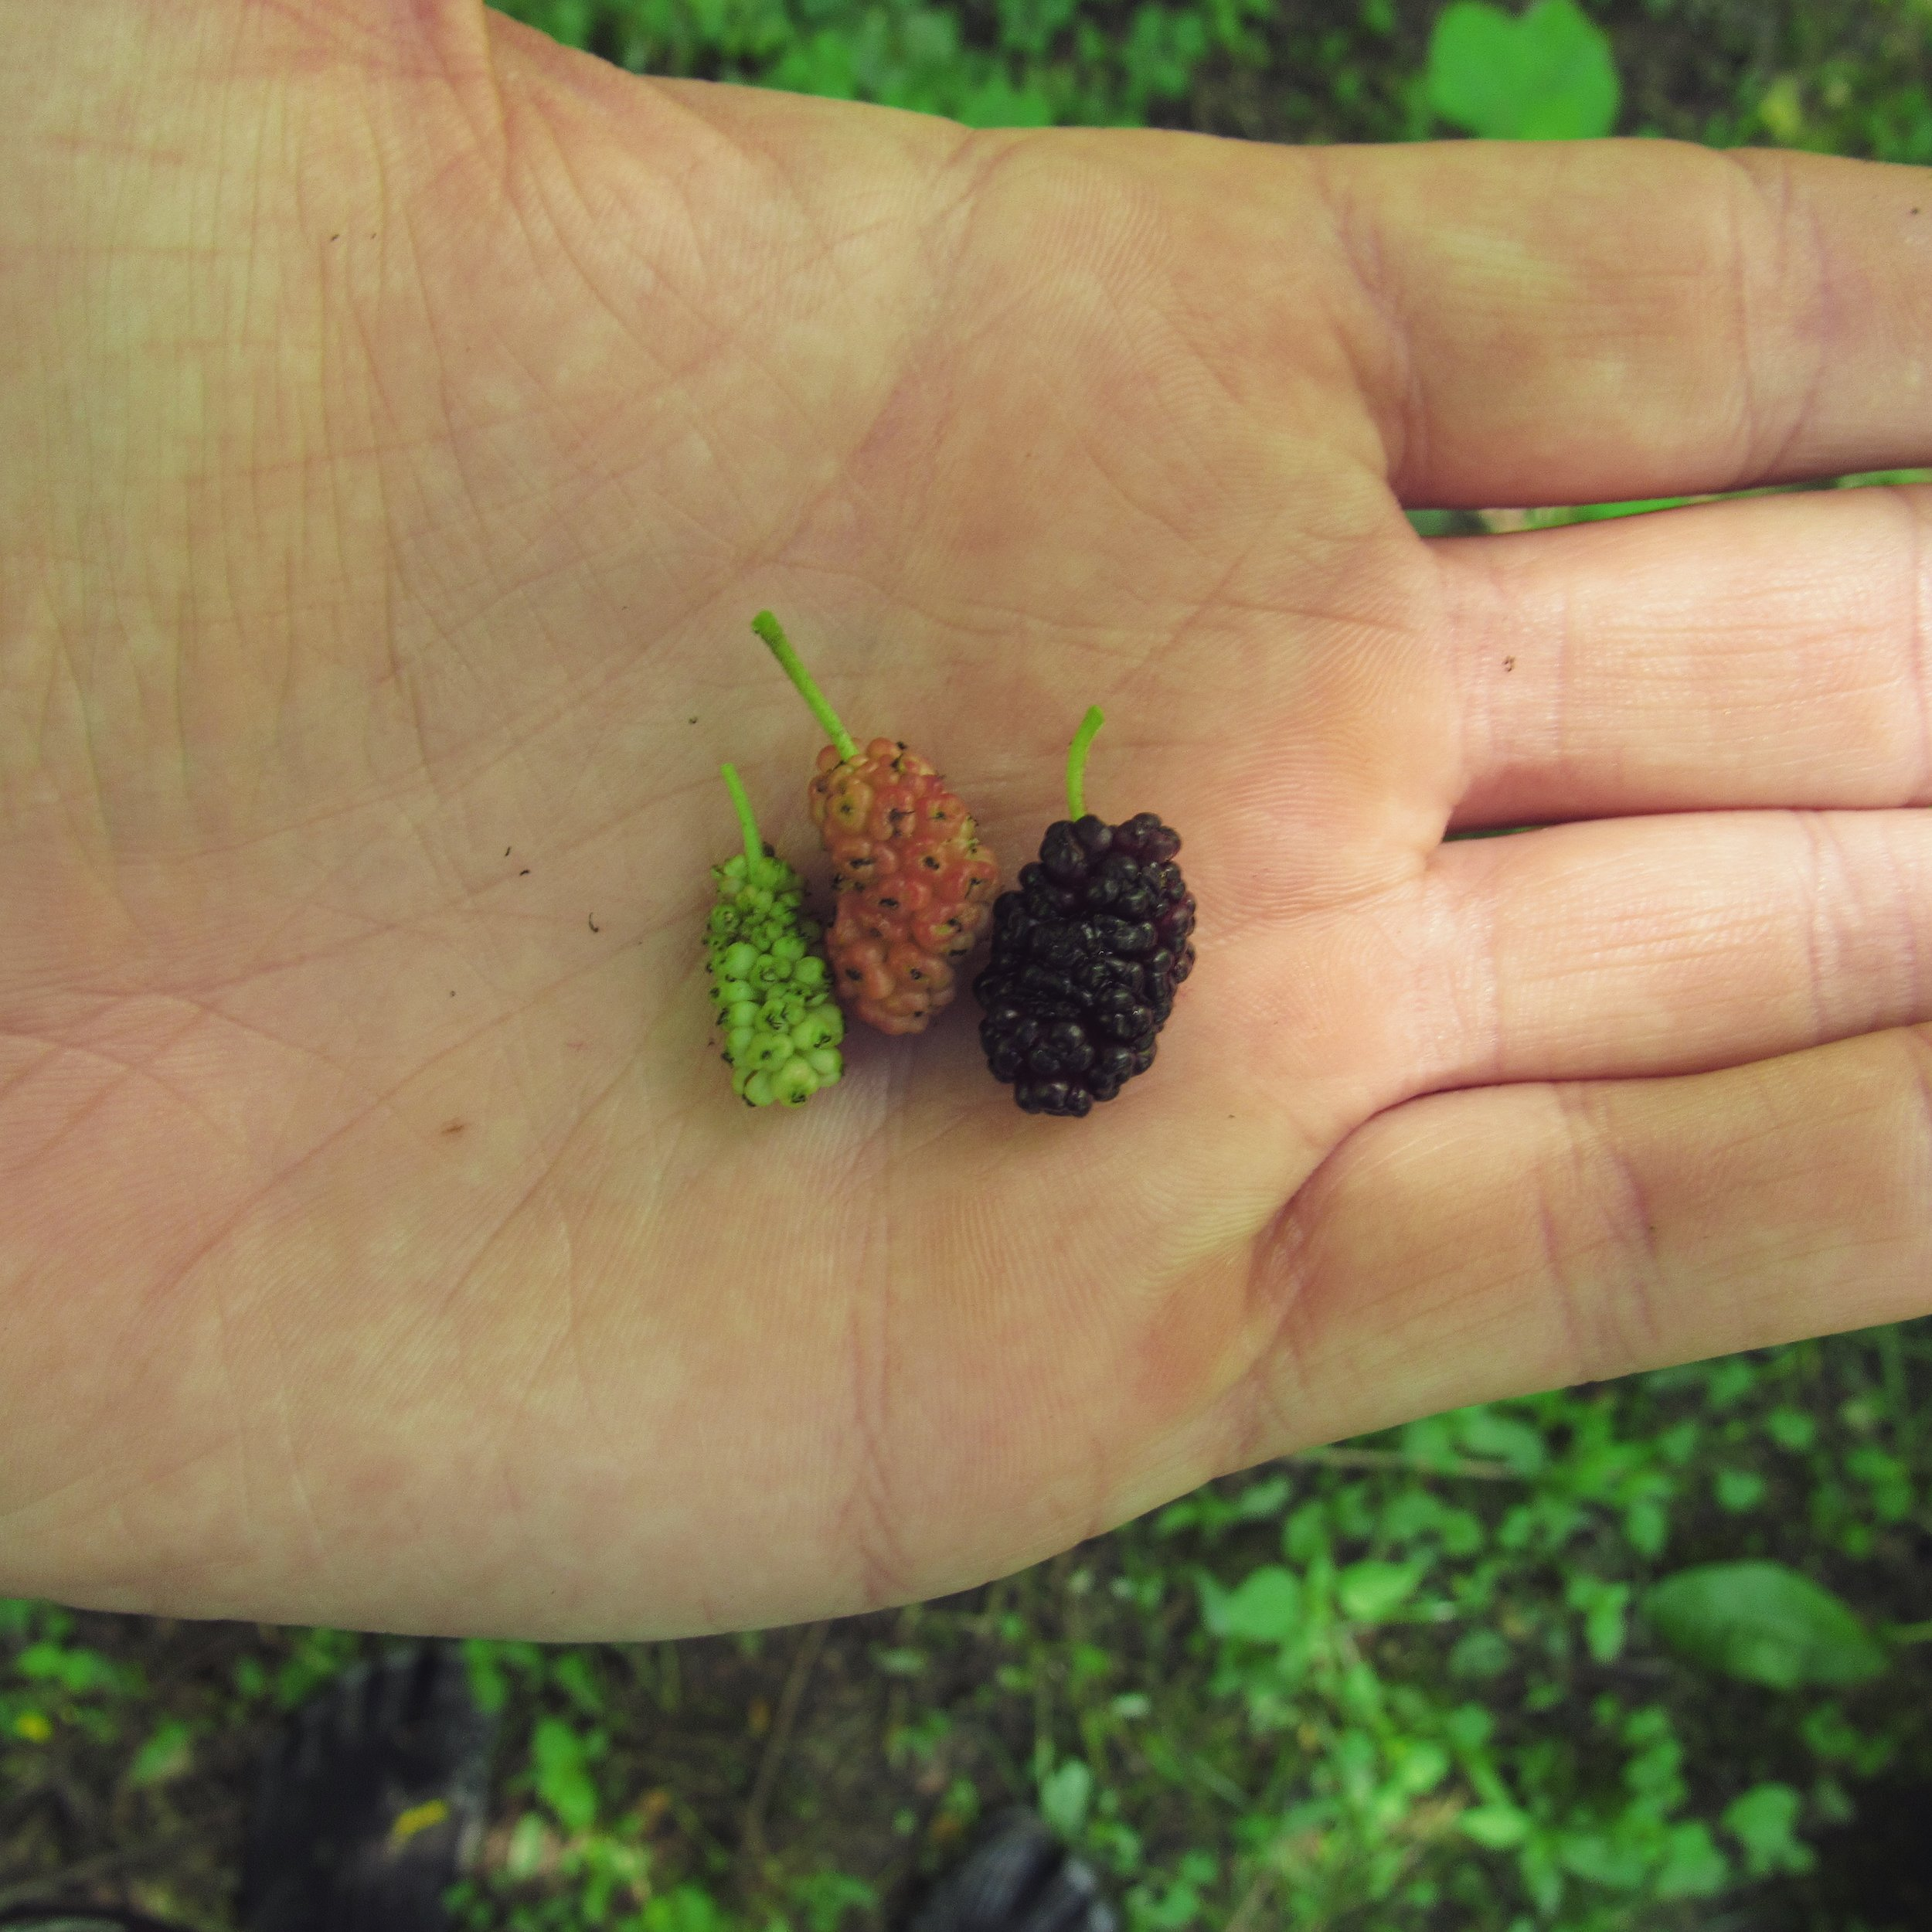 Here you can see three distinct phases of red mulberry ripeness.